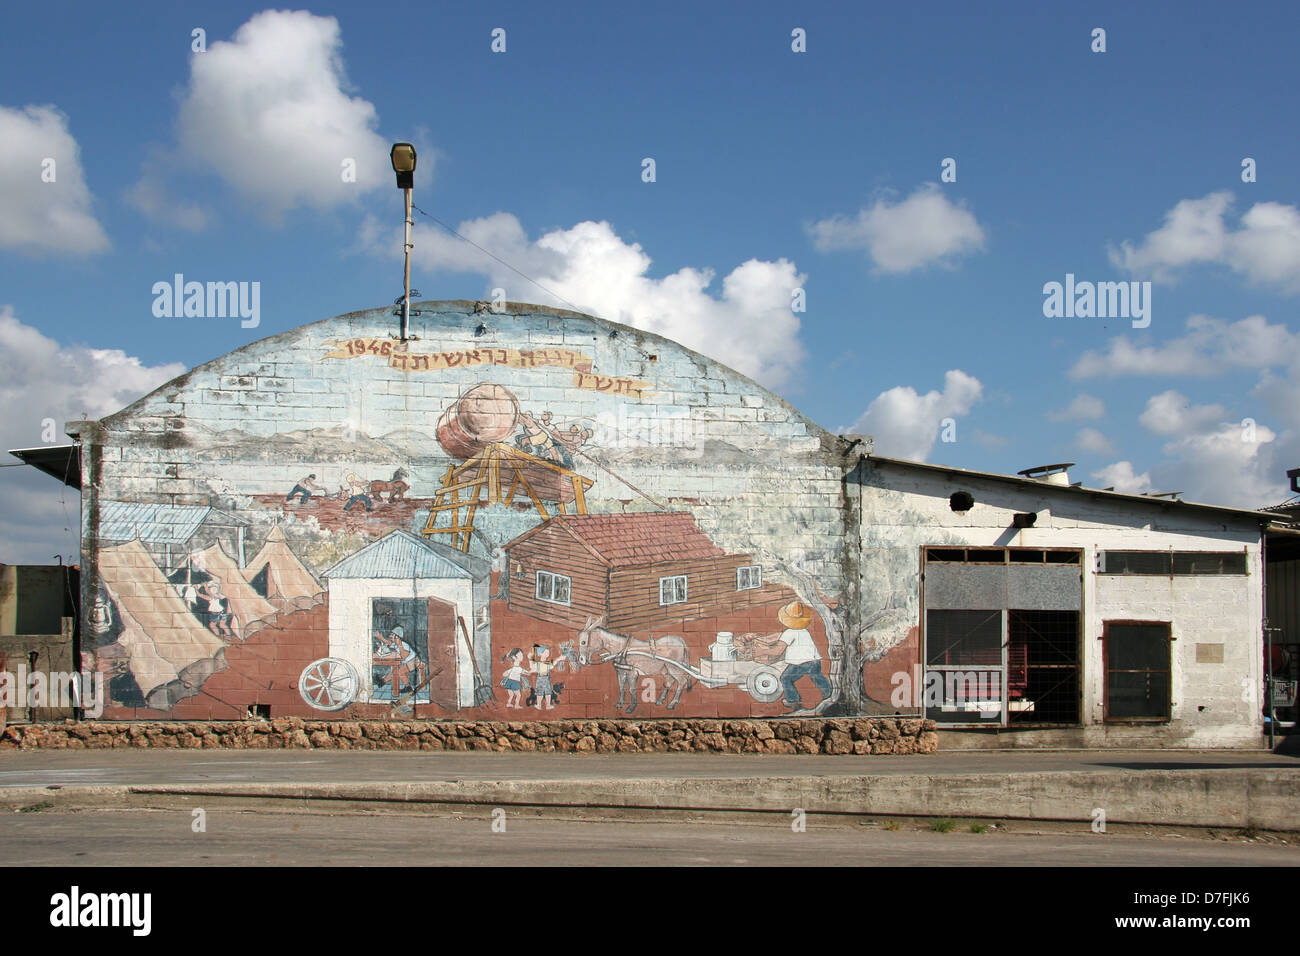 mural depicting the history of regba, western galilee - Stock Image